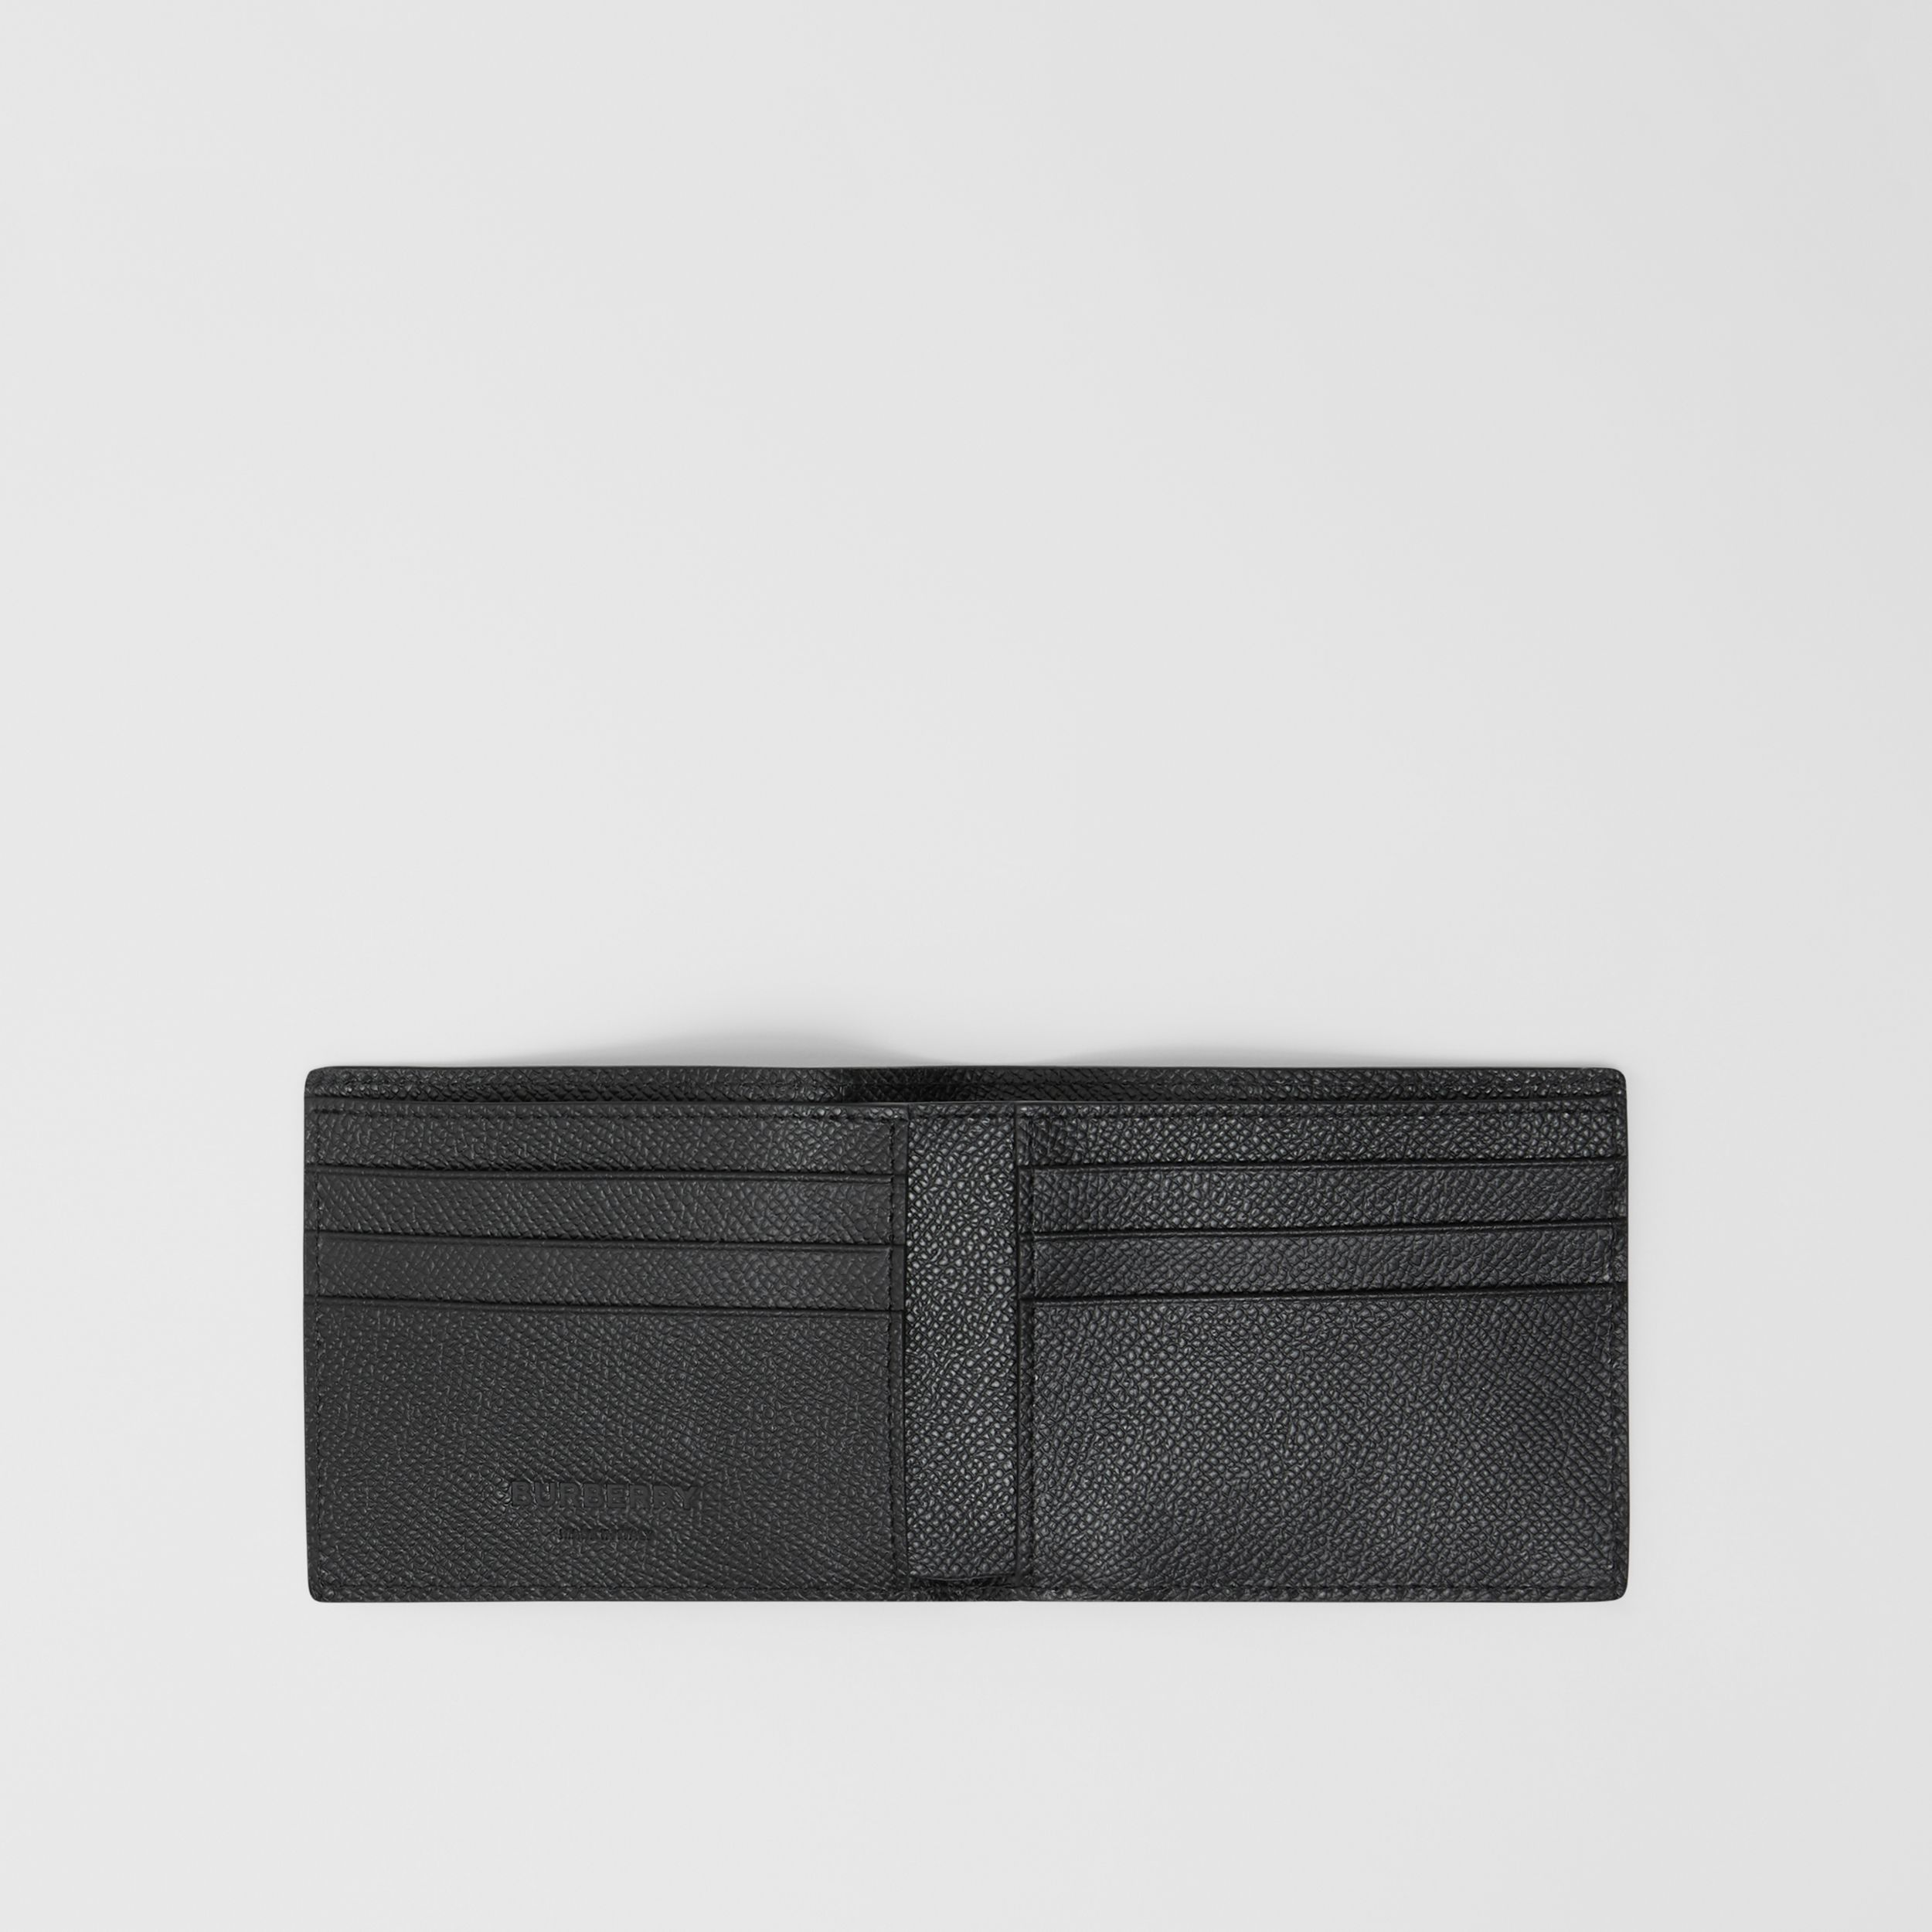 Grainy Leather Bifold Wallet in Black - Men | Burberry Singapore - 3